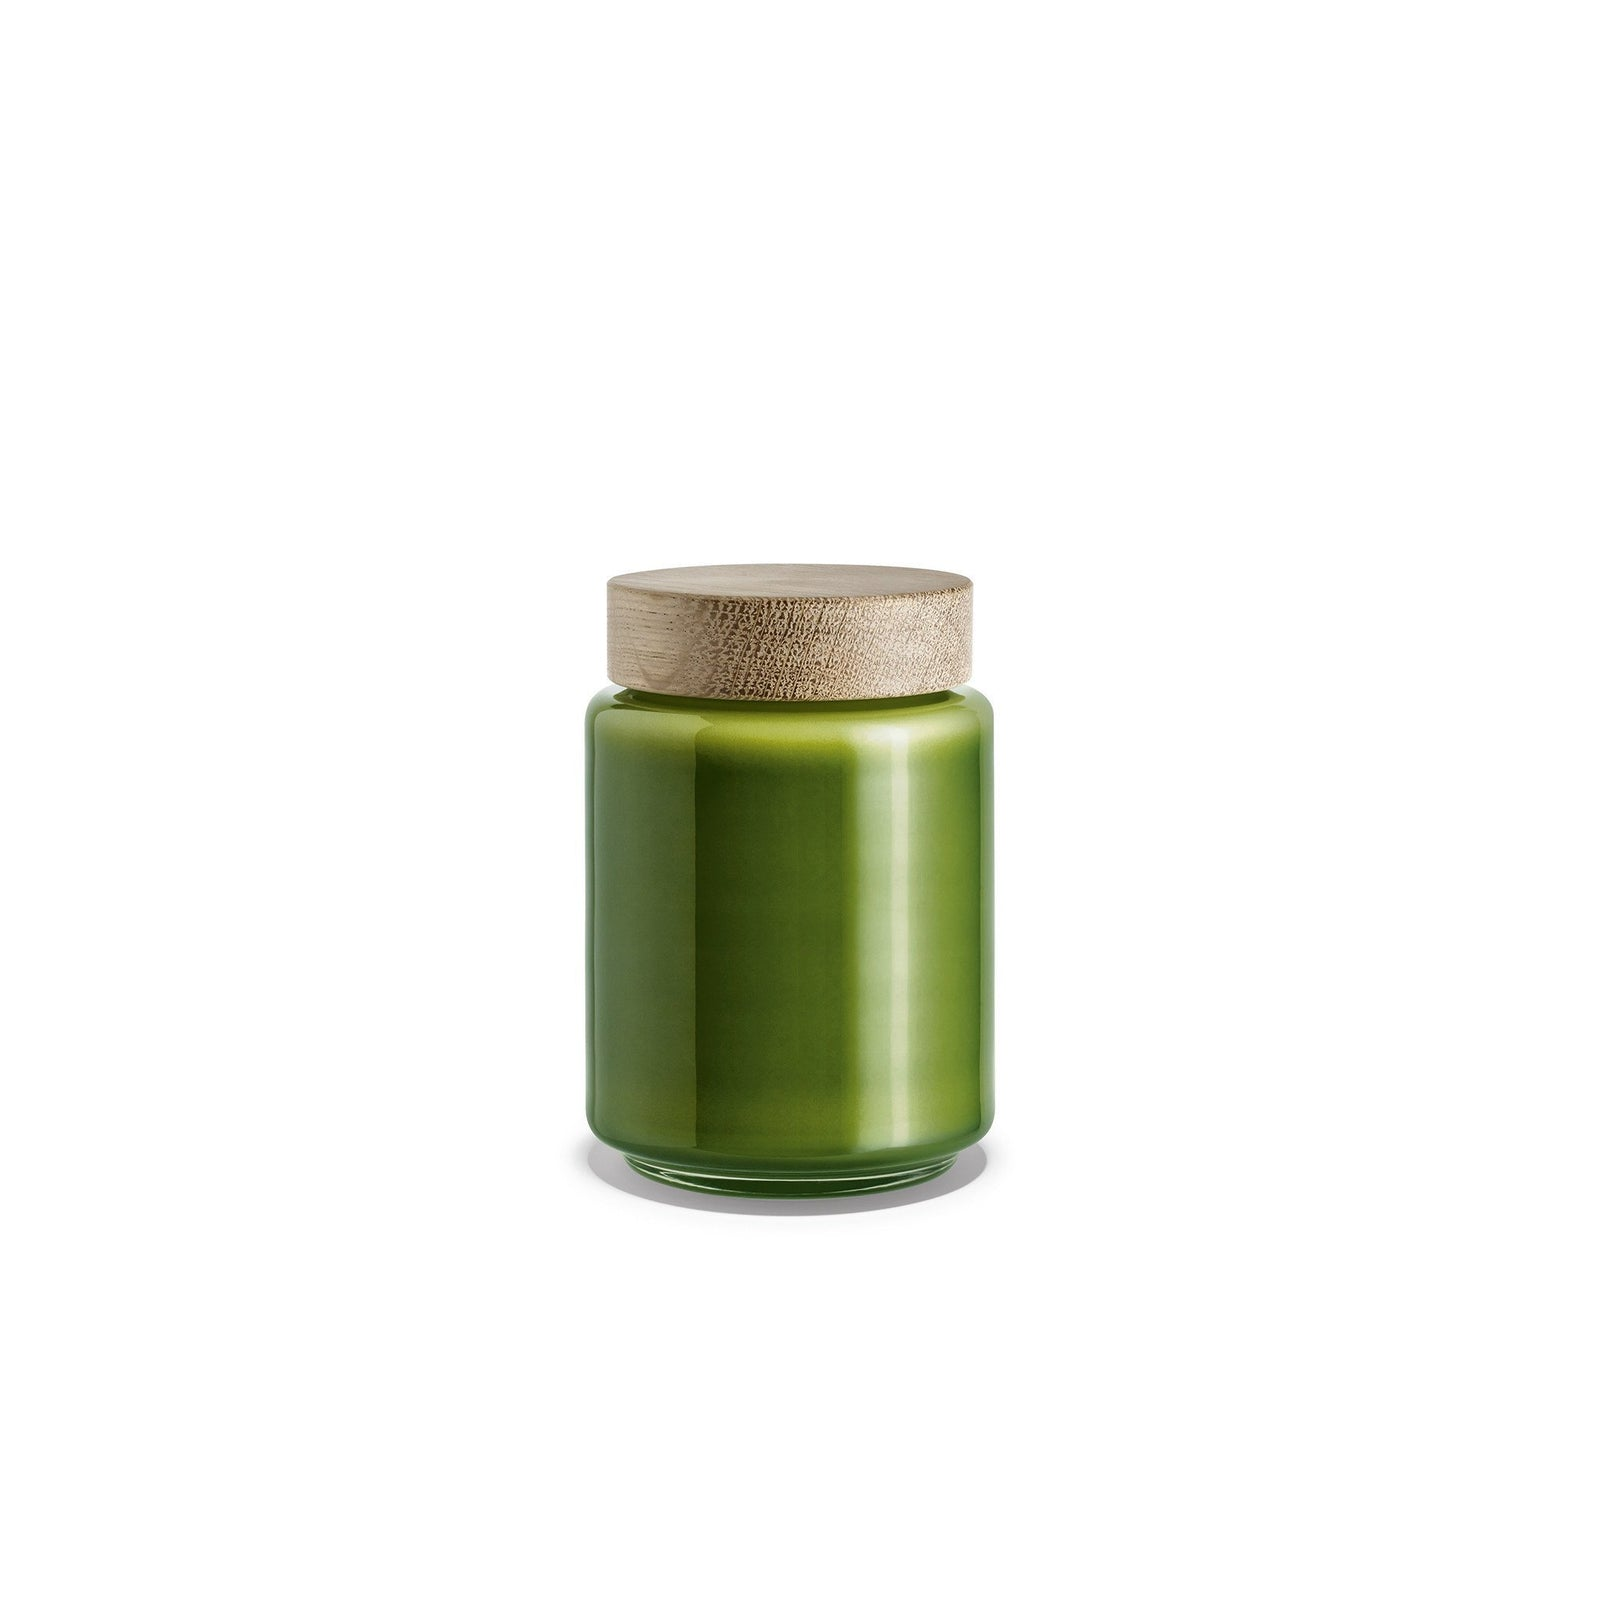 Palet Storage Jar, Green, 0.75 Qt.